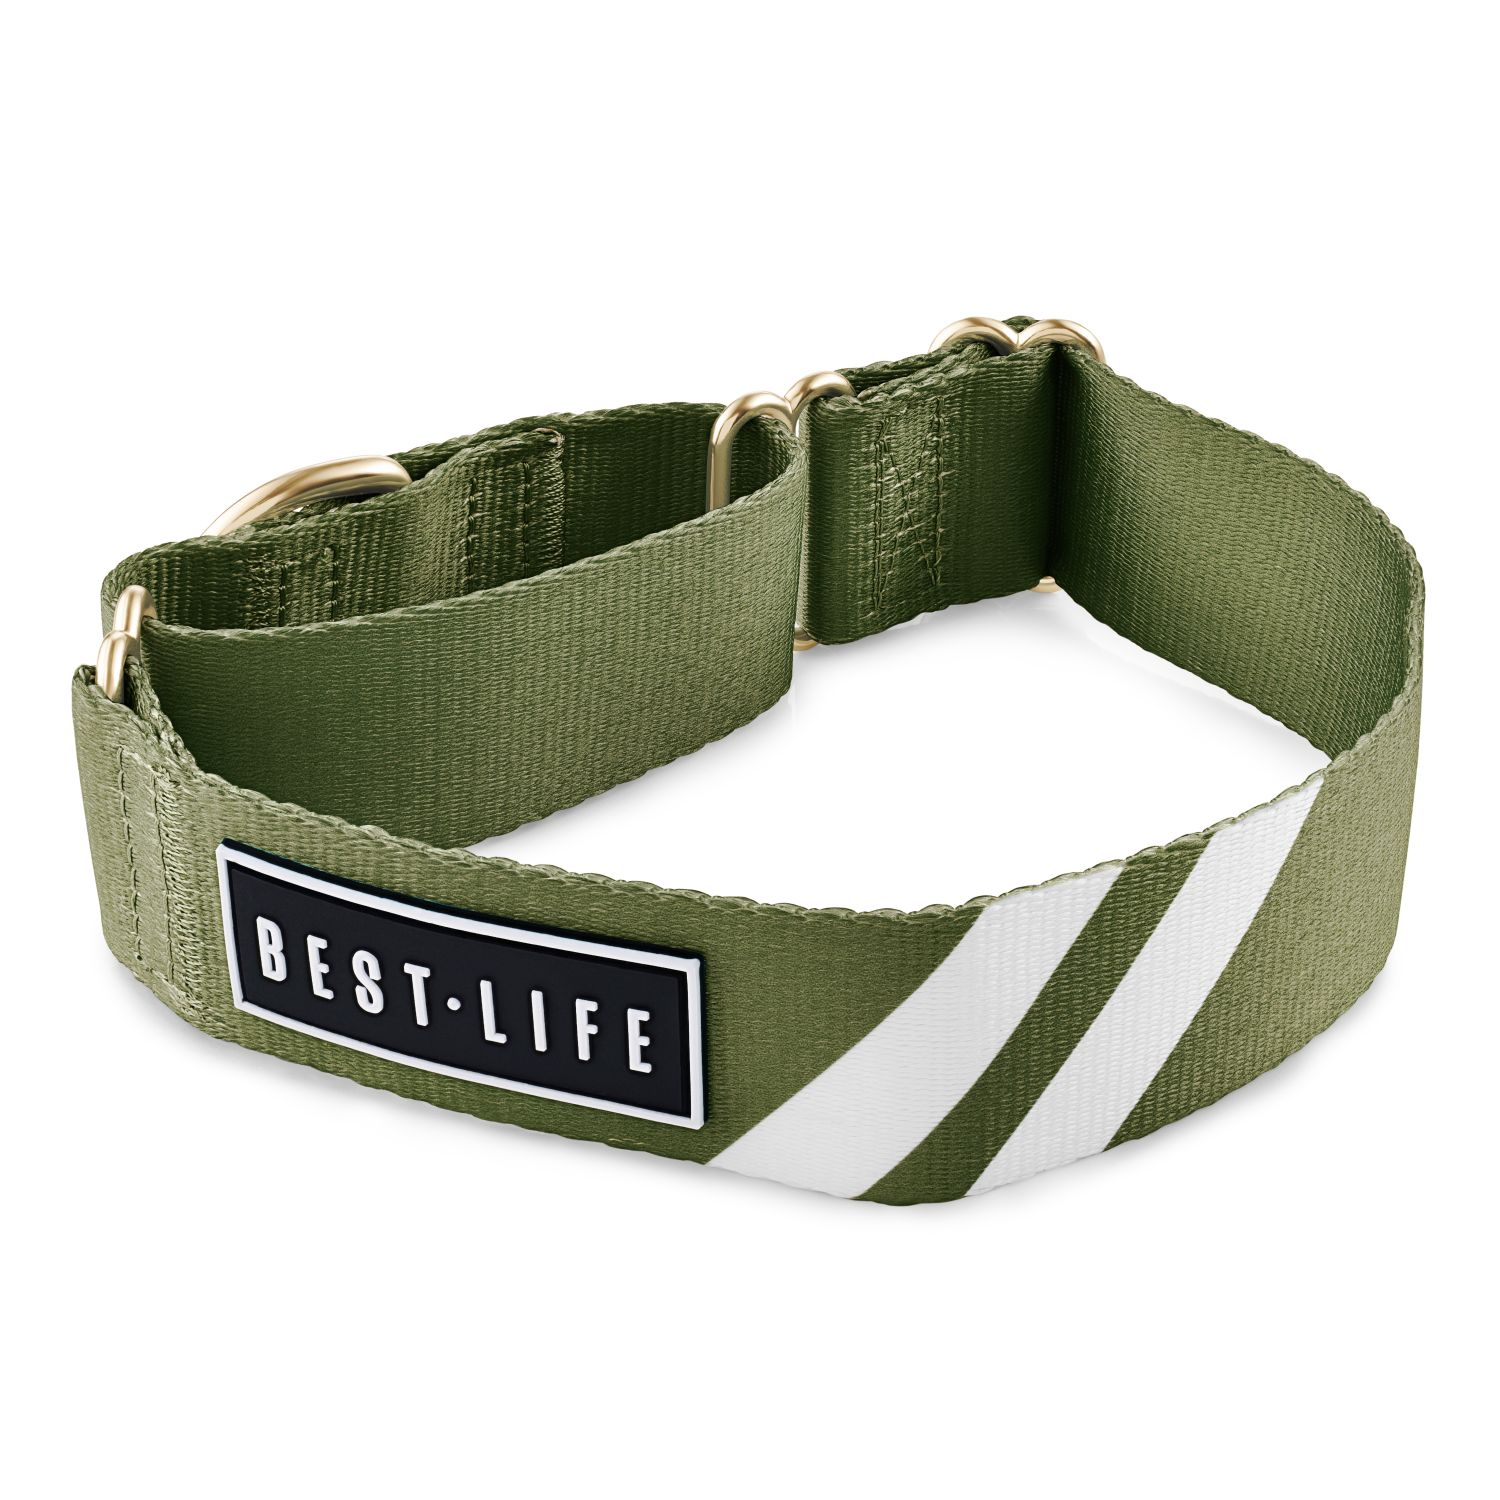 Awesome Olive - Martingale Collar collar bestlifeleashes Small 11